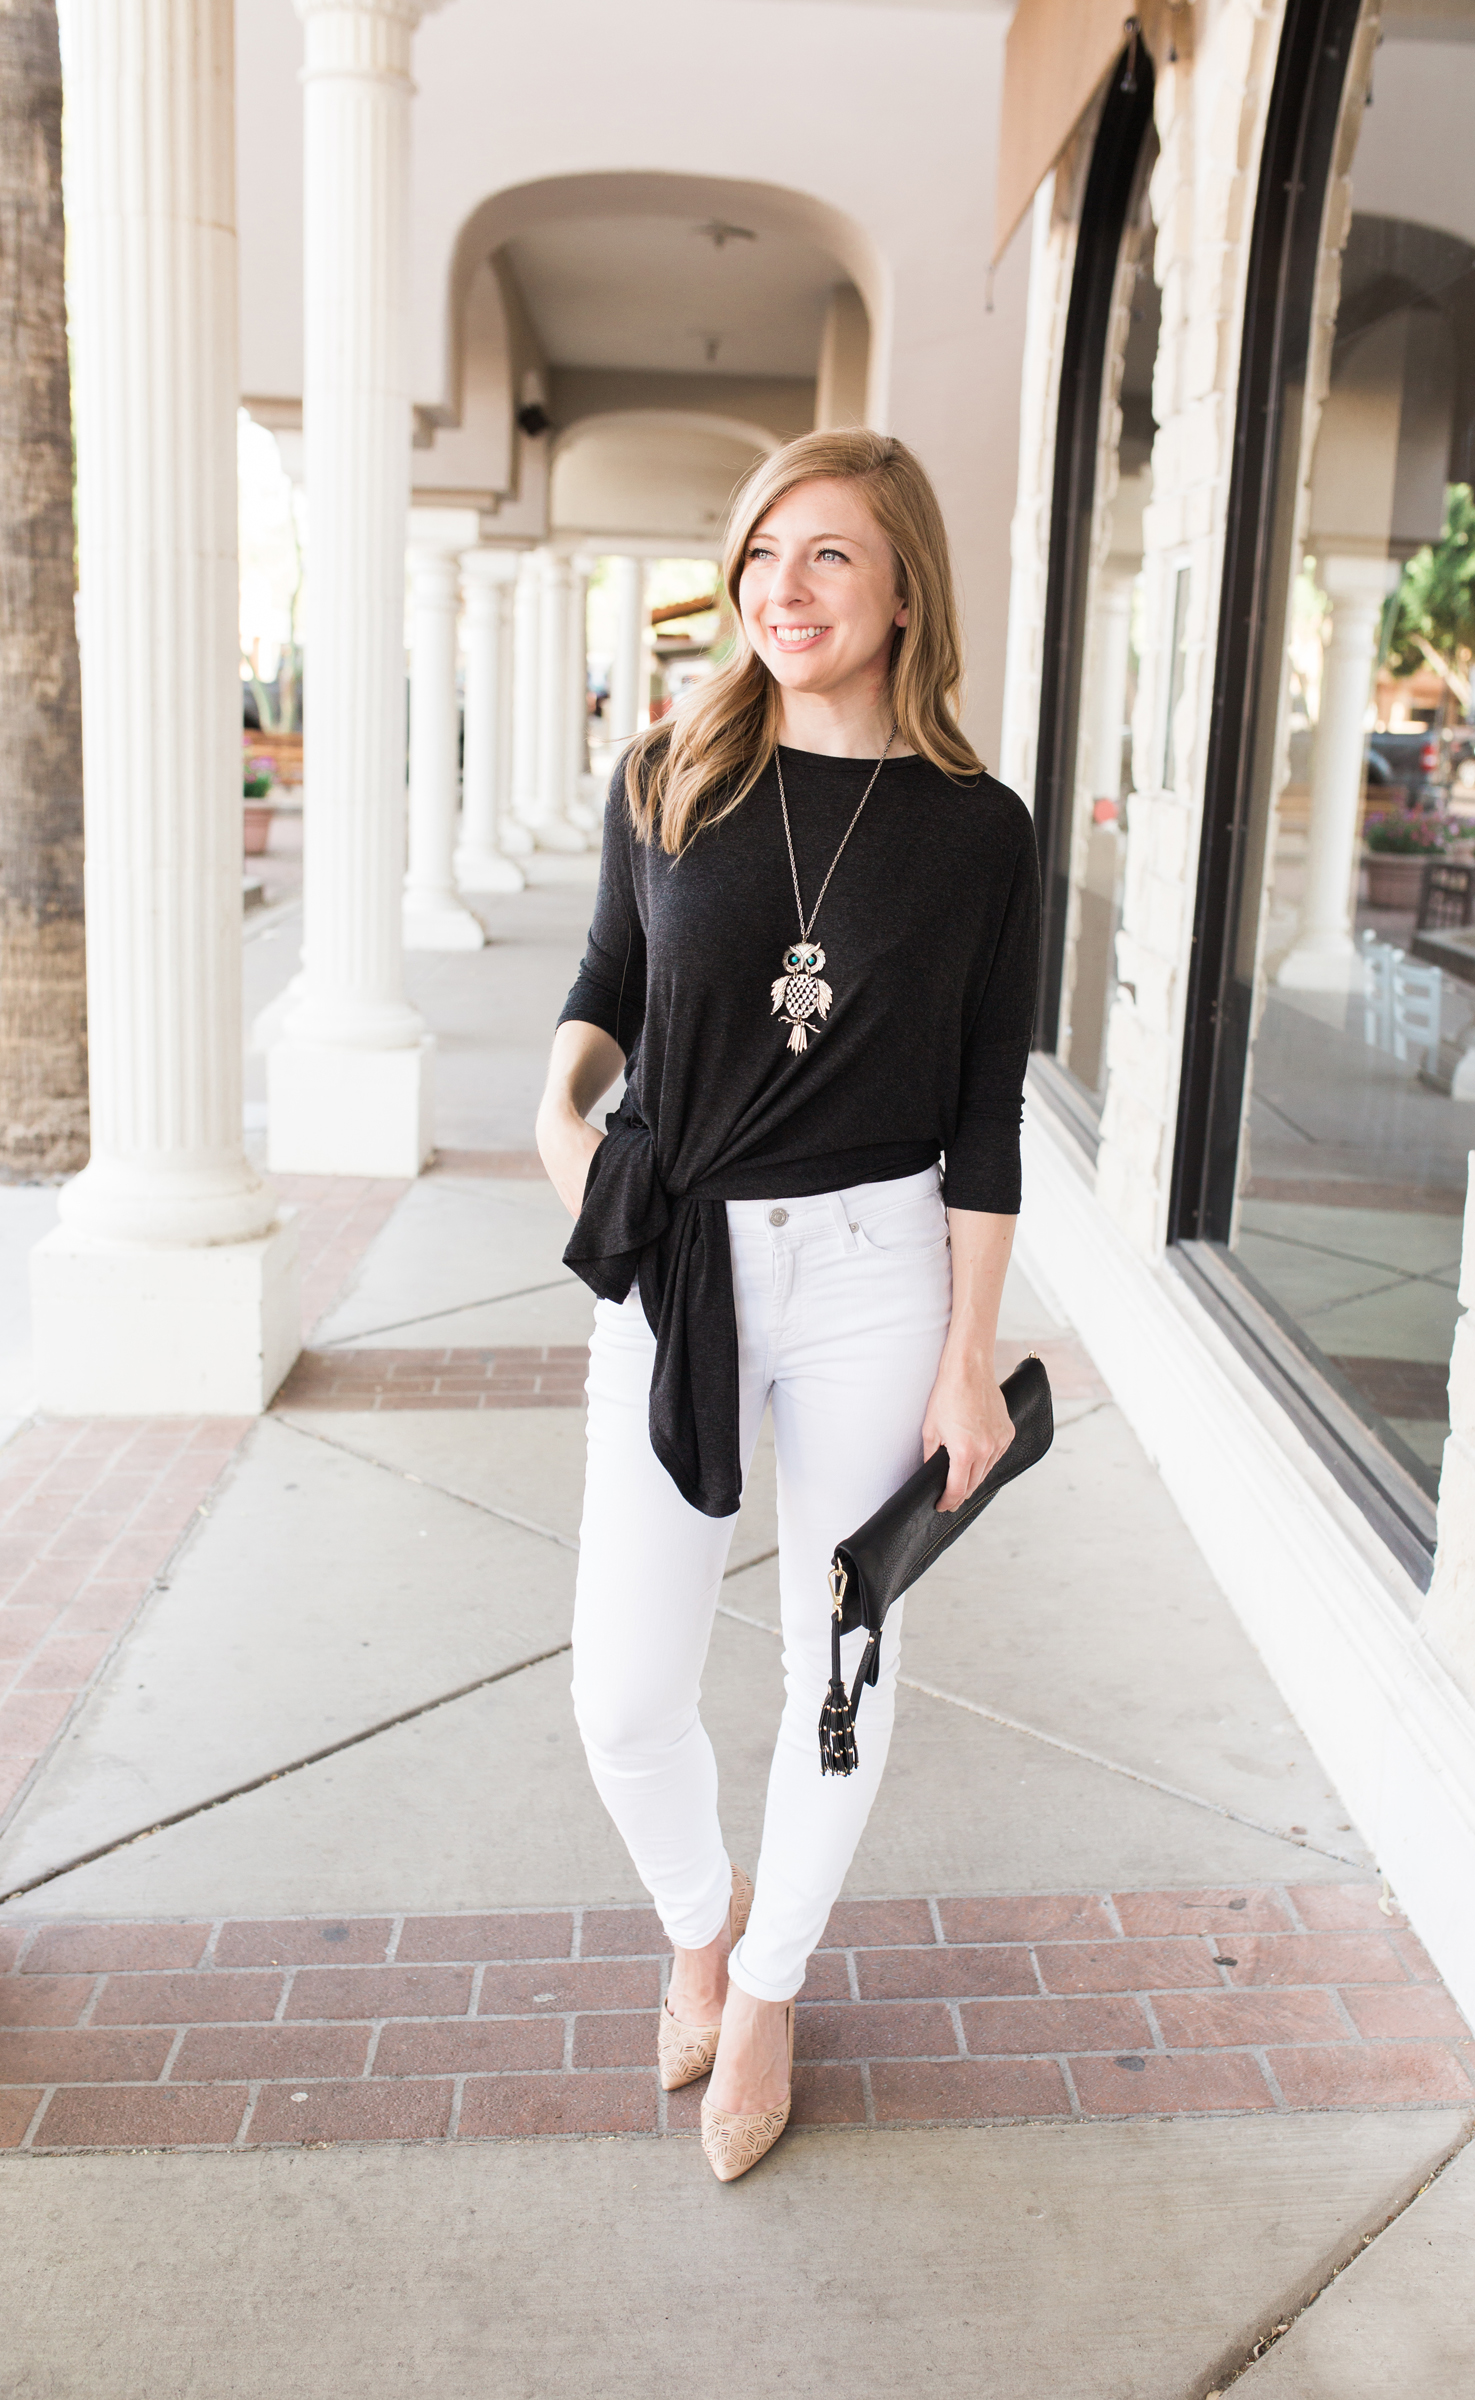 Versatile tunic tied in a knot